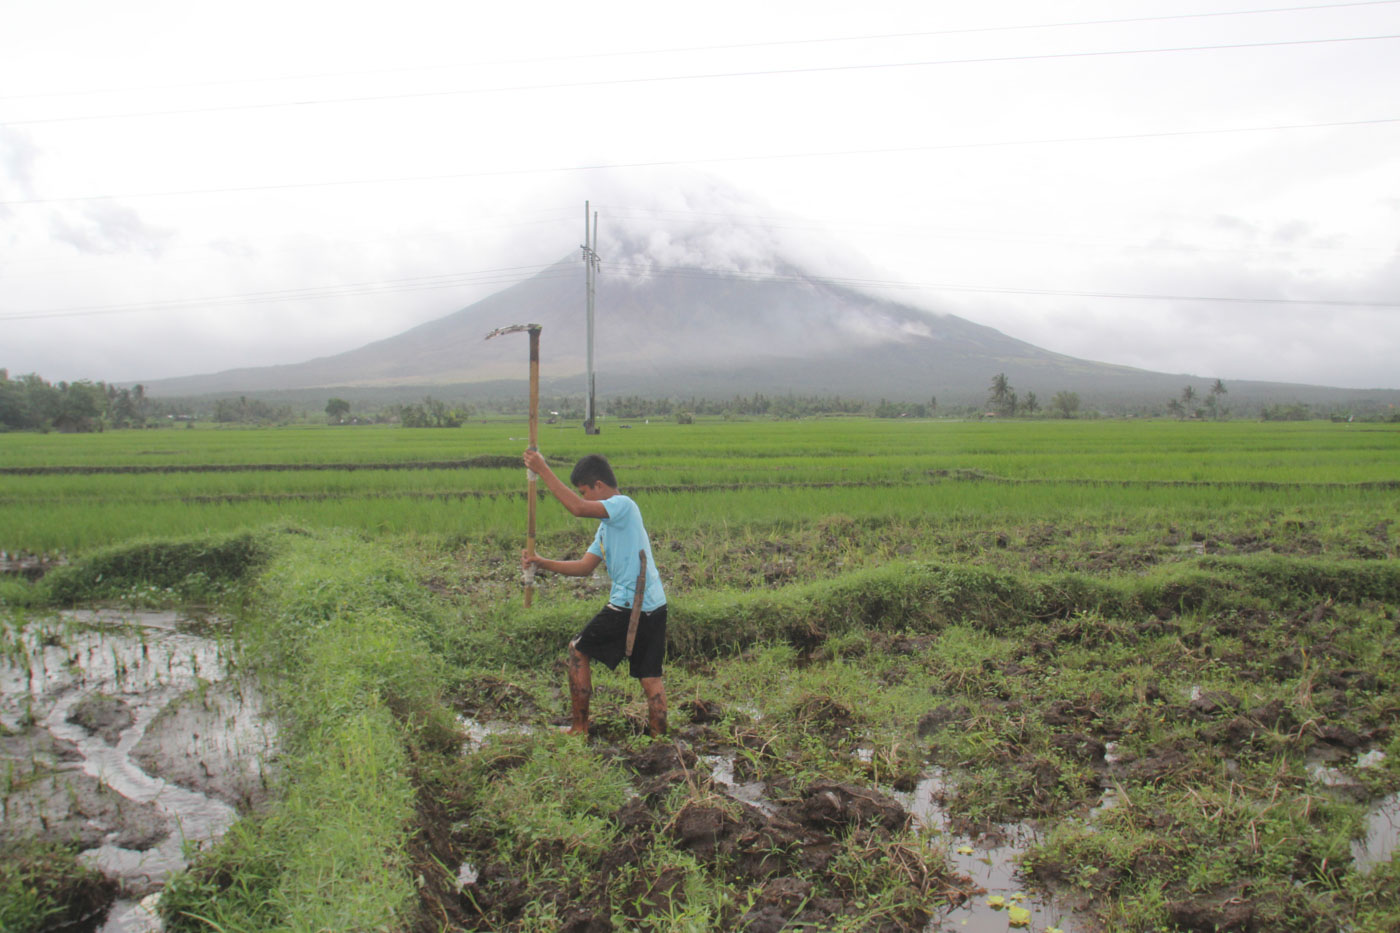 MAYON VOLCANO. Farmers in Camalig till their farmland while the Mayon Volcano remains on Alert Level 3. Photo by Rhaydz Barcia/Rappler